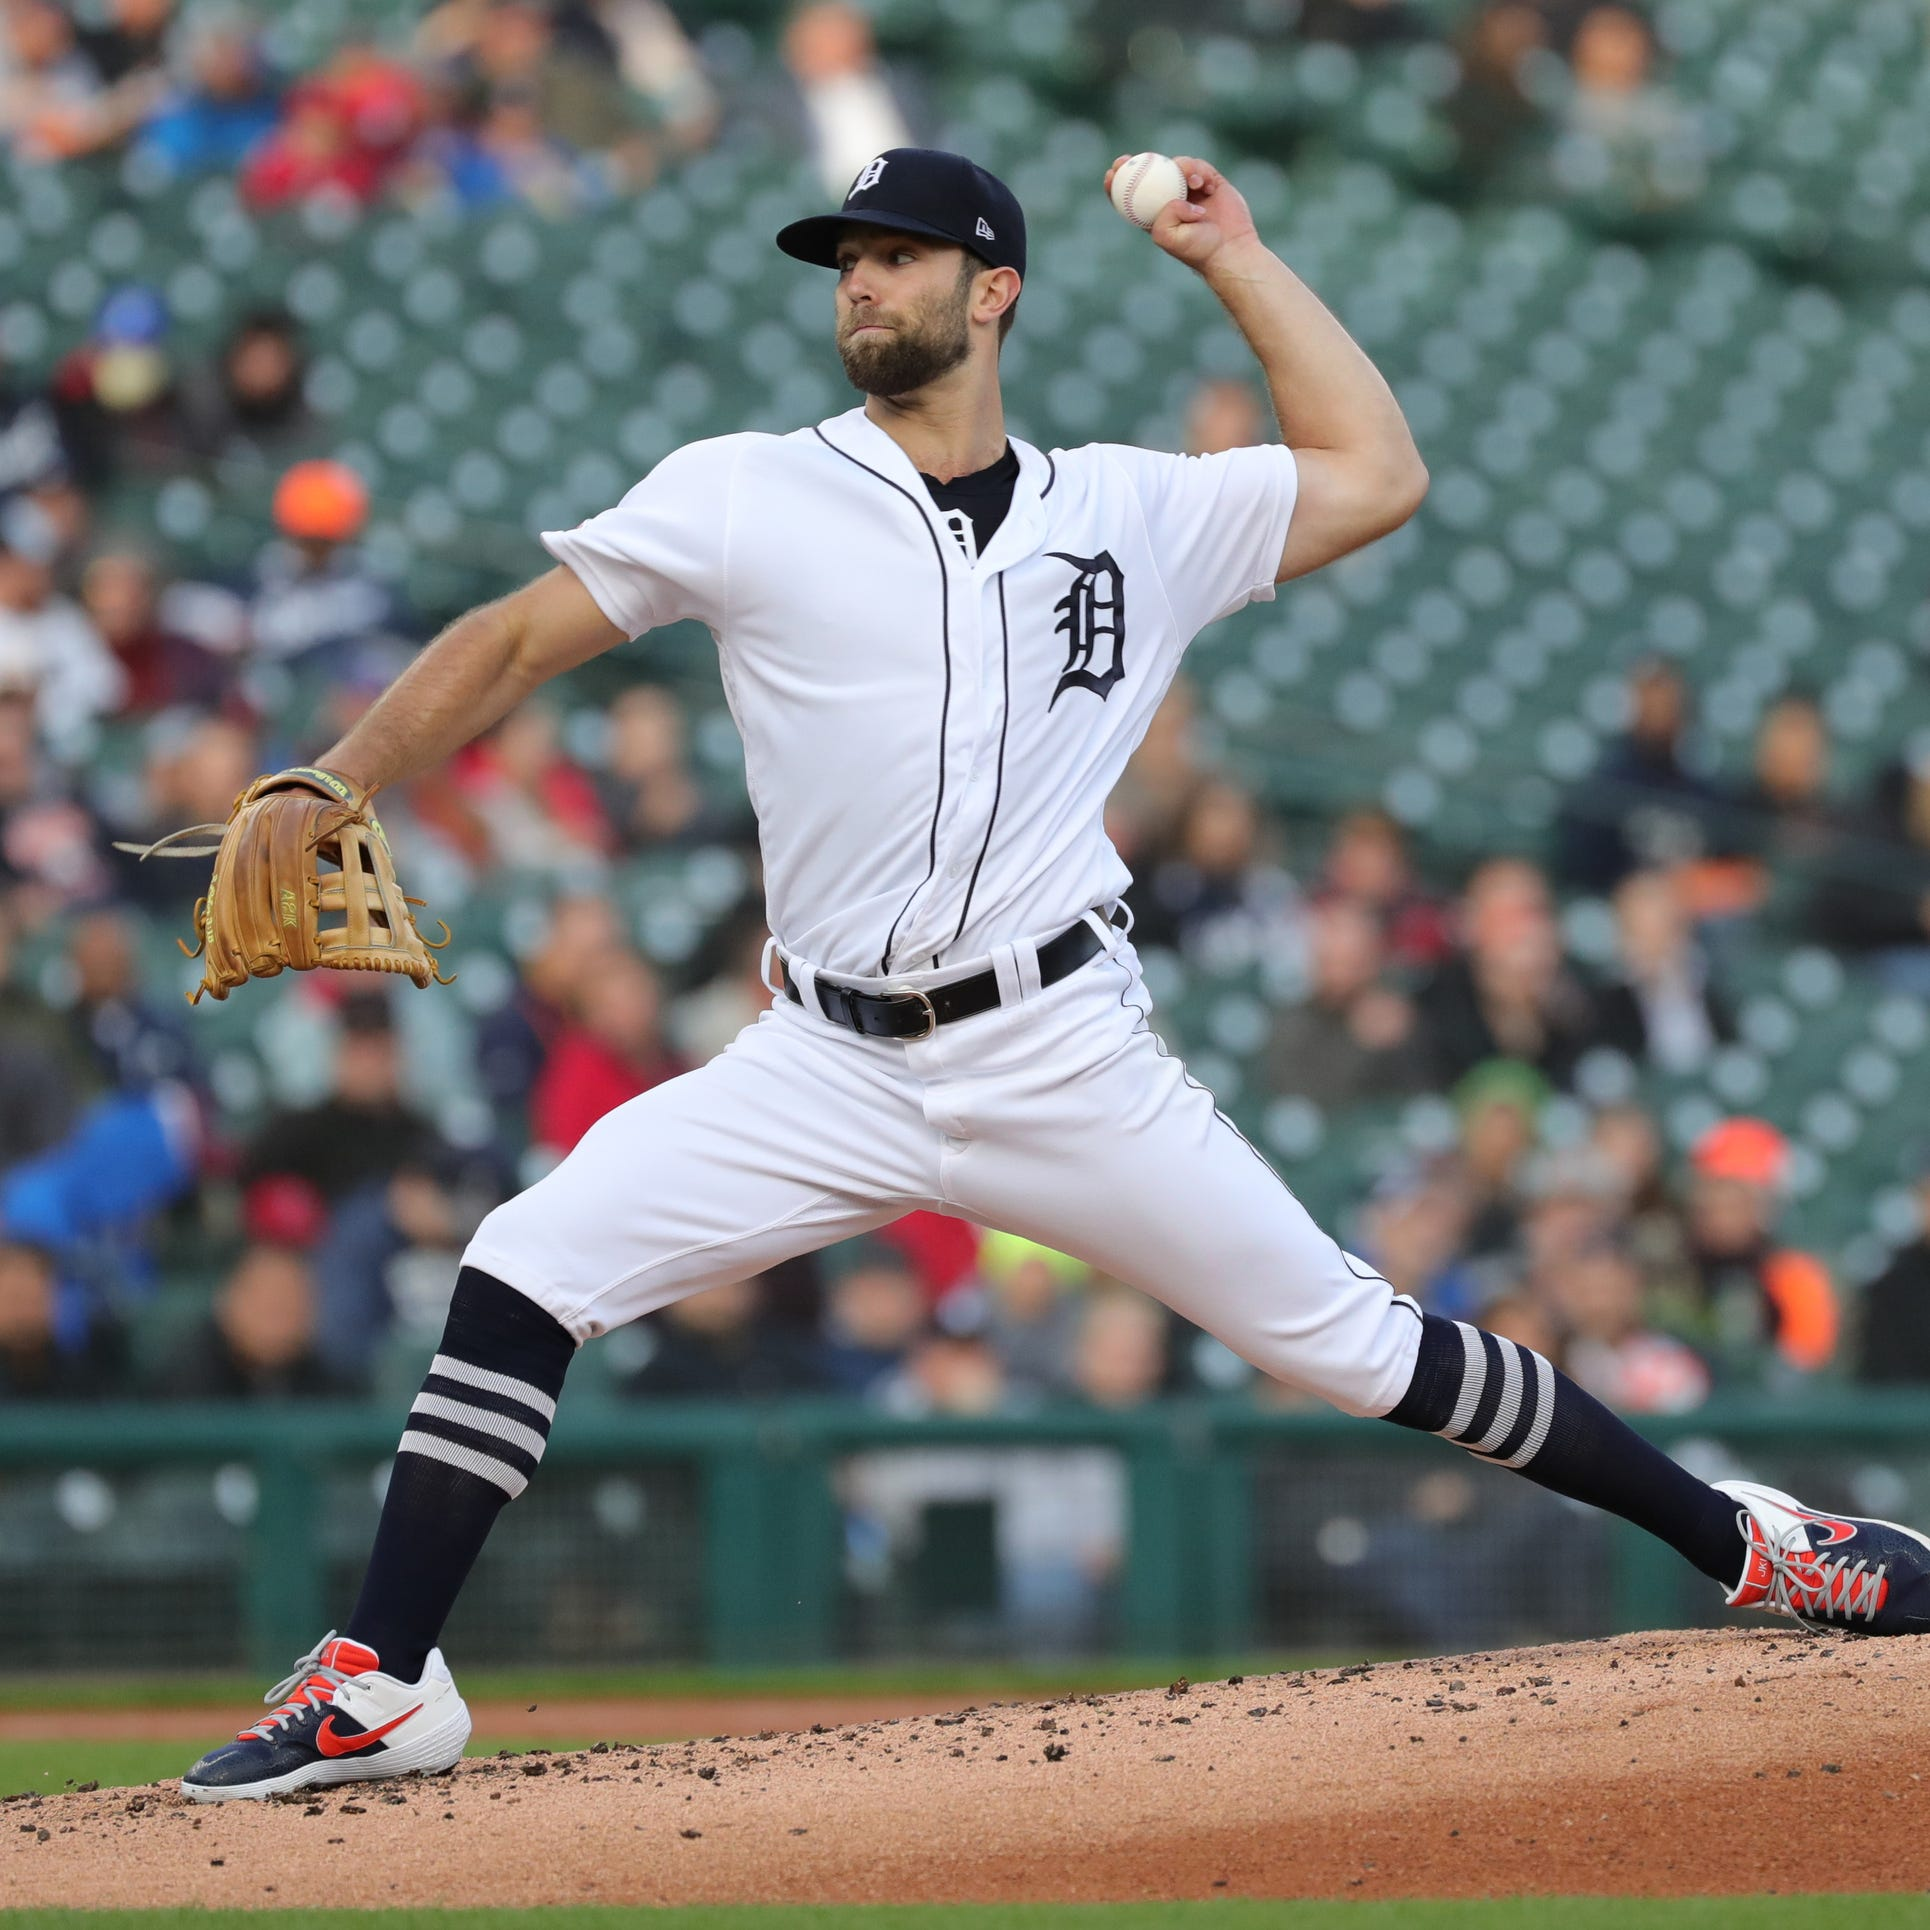 Here's why Detroit Tigers' Daniel Norris was pleased with his start in Tuesday's loss